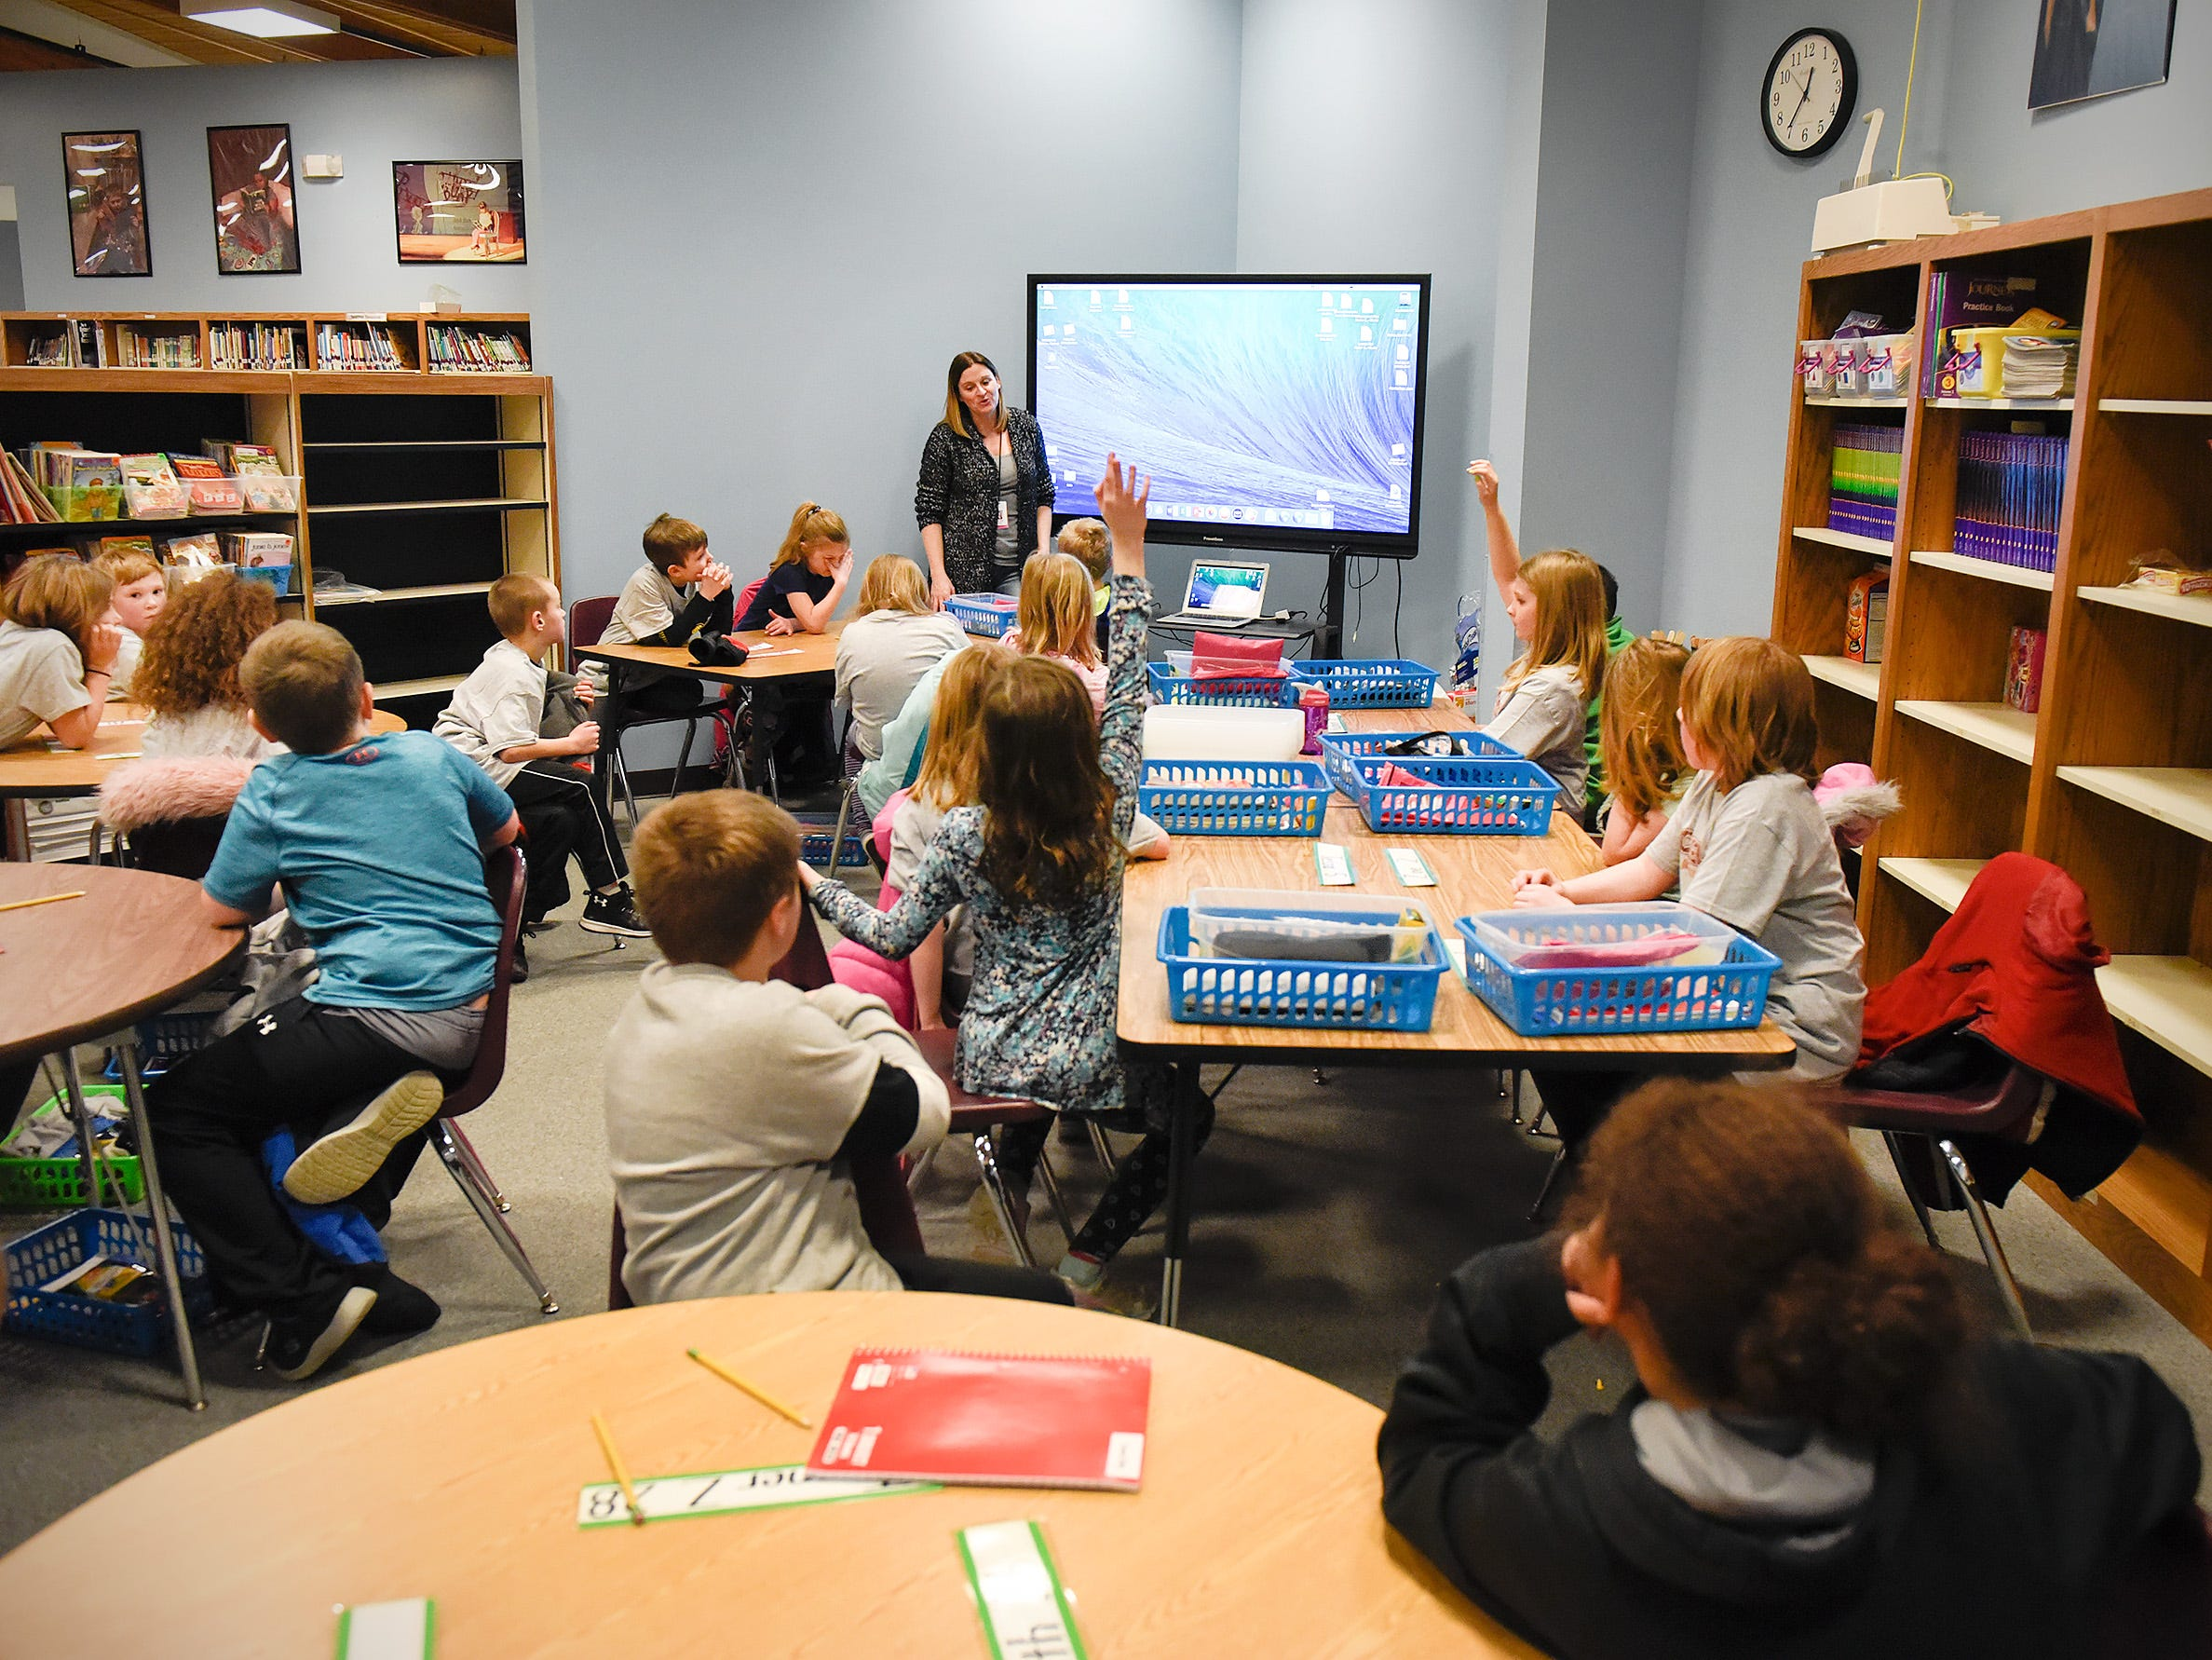 Teacher Deb Blum gets back to normal after moving  her third grade classroom to an area of the learning resource center Tuesday, Jan. 15, at Pleasantview Elementary School in Sauk Rapids.